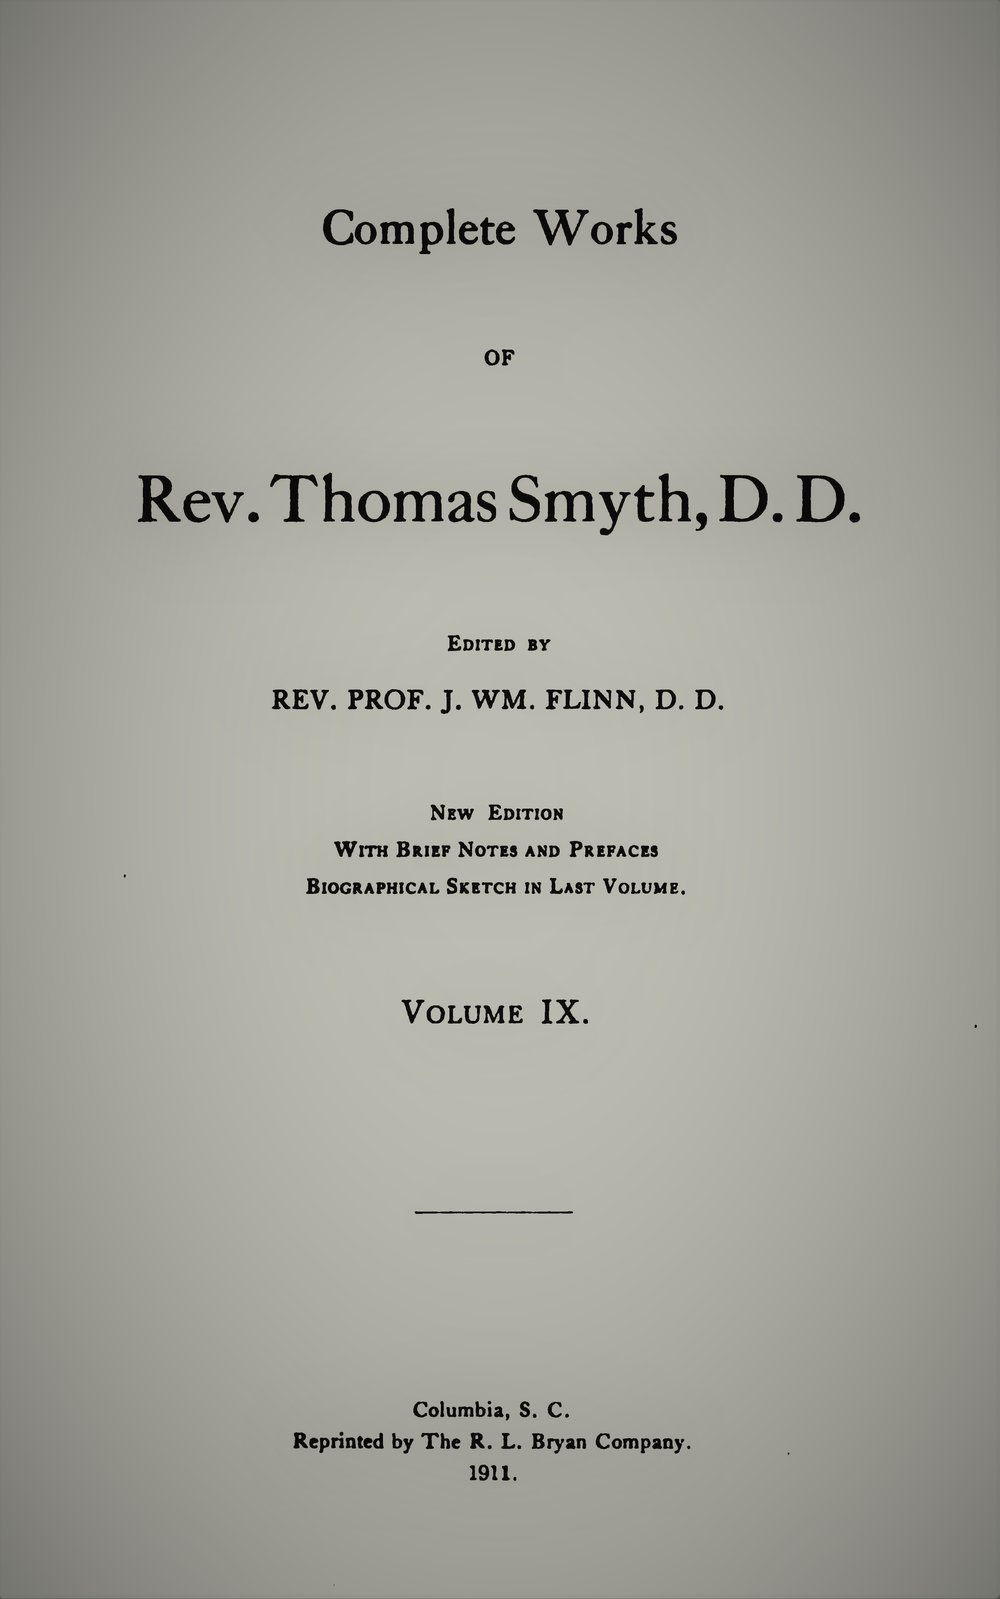 1 - Articles on the Trinity 2 - The Divinity of Christ 3 - Unitarianism not the Gospel 4 - Unitarianism Another Gospel 5 - Dr. Watts Not a Unitarian 6 - The Scriptural Doctrine of the Second Advent 7 - On the Fellowship and Communion of Believers With the Father, Son and Holy Ghost 8 - The Spirit's Influences Vindicated From Objections by their Analogy to the Wind 9 - Articles on the American Tract Society 10 - Articles Referring to the American Tract Society on Dr. Wayland's Letter 11 - The Destruction of the Hopes of Man - a Discourse 12 - Articles on Baptism 13 - Form for the Solemnization of Matrimony 14 - An Order for Funeral Services 15 - The Form of Public Admission to the Church 16 - The Lord's Supper 17 - Forms of Doxology and Benediction